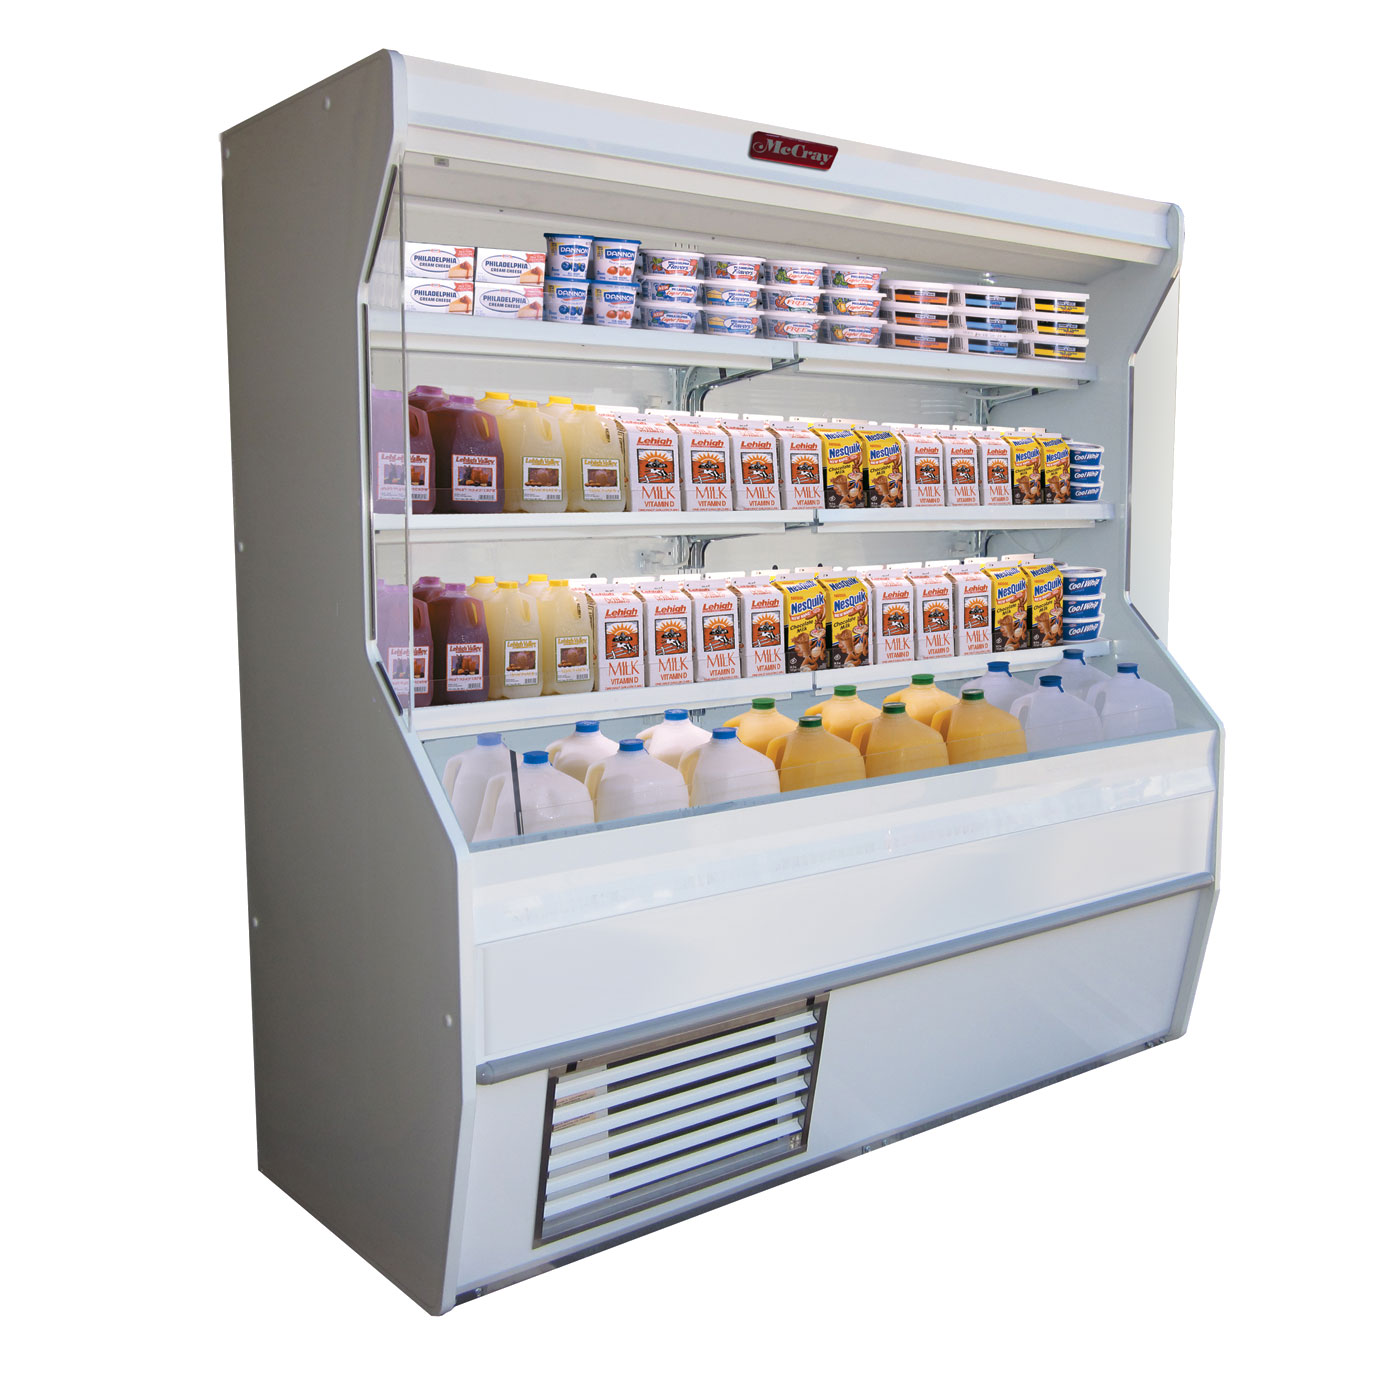 Howard-McCray R-D32E-6-LED merchandiser, open refrigerated display